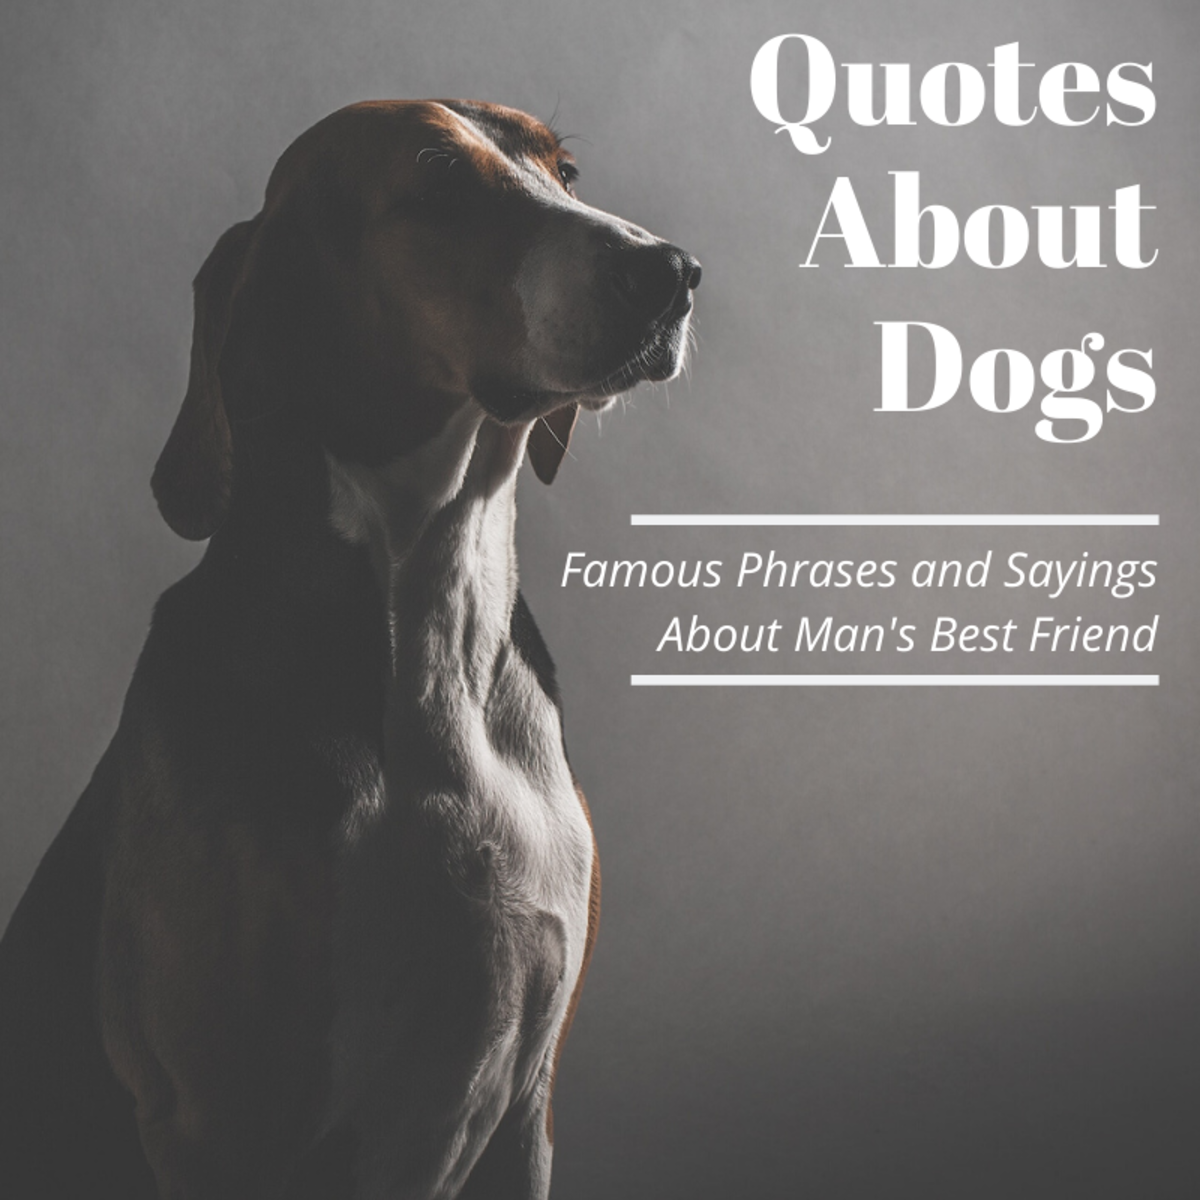 Since their domestication thousands of years ago, dogs have inspired many insightful sayings that still ring true today.